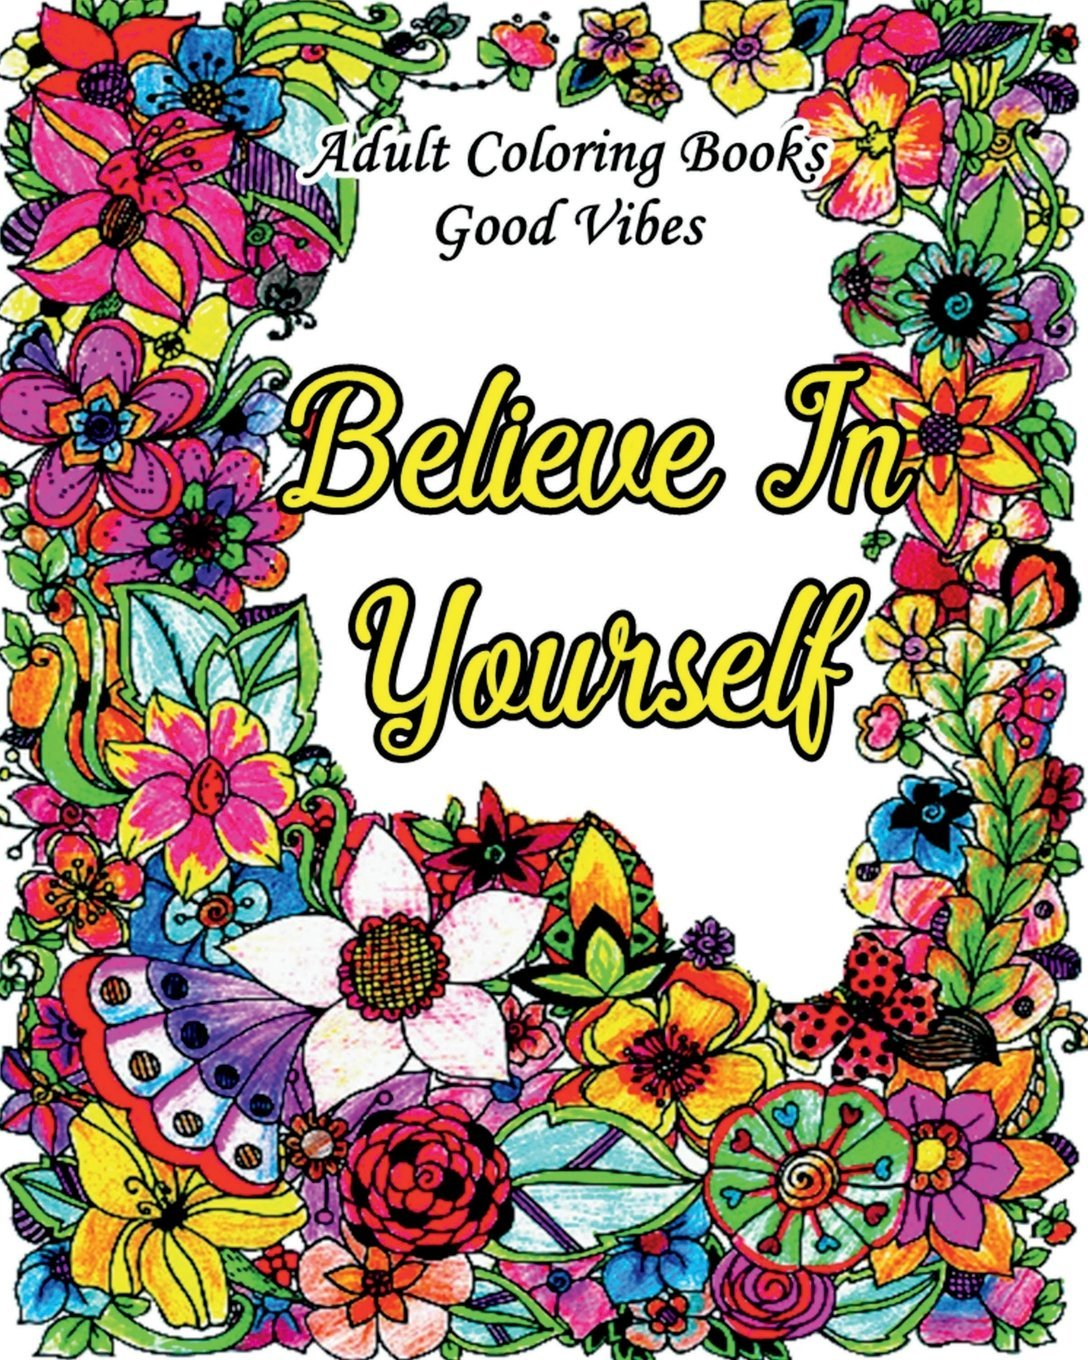 Read Online Adult Coloring Books Good Vibes: Inspirational Quotes Coloring Books, An Adult Coloring Book with Motivational Sayings (Animals & Flowers with Quotes) pdf